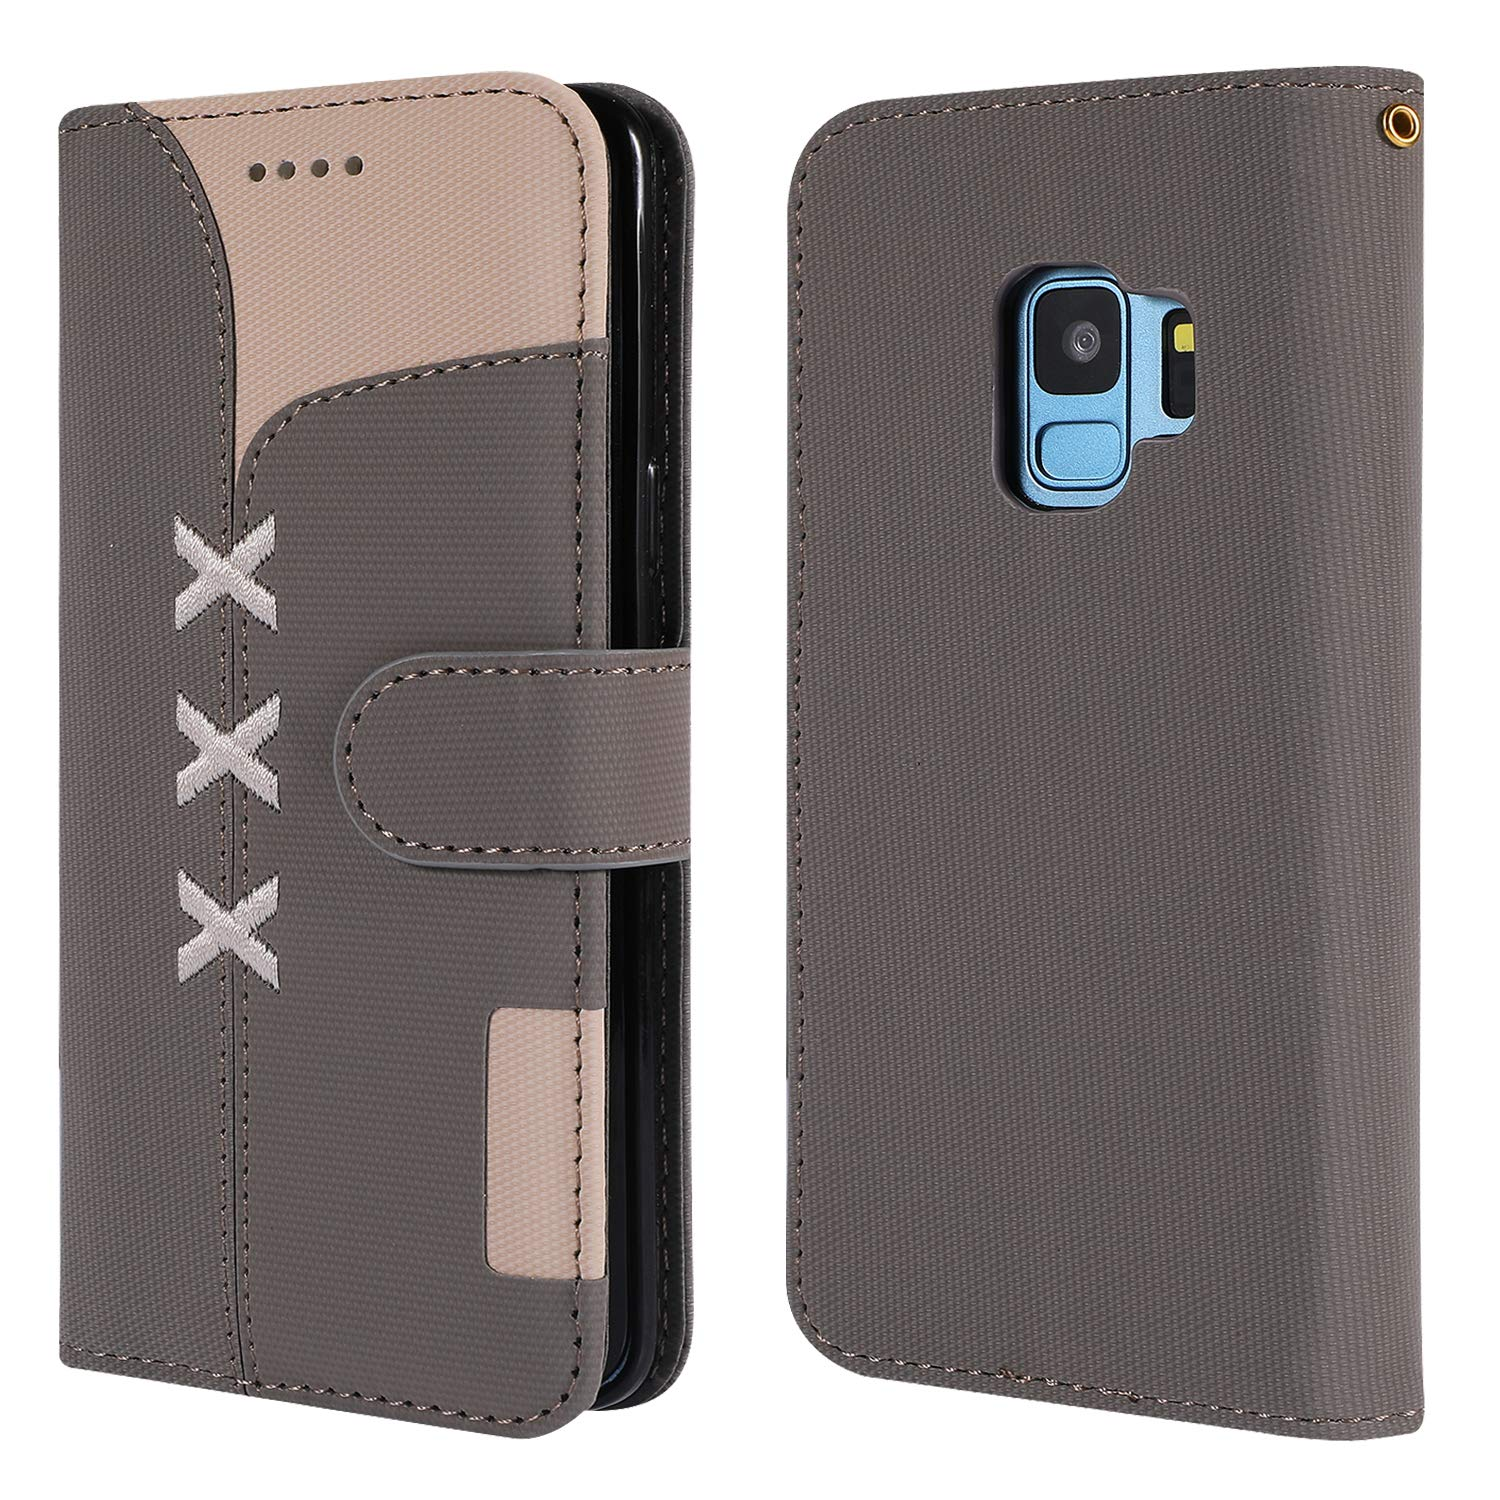 LOGHU040227 Azure G960 Case Samsung Galaxy S9 Lomogo Leather Wallet Case with Kickstand Card Holder Shockproof Flip Case Cover for Samsung Galaxy S9